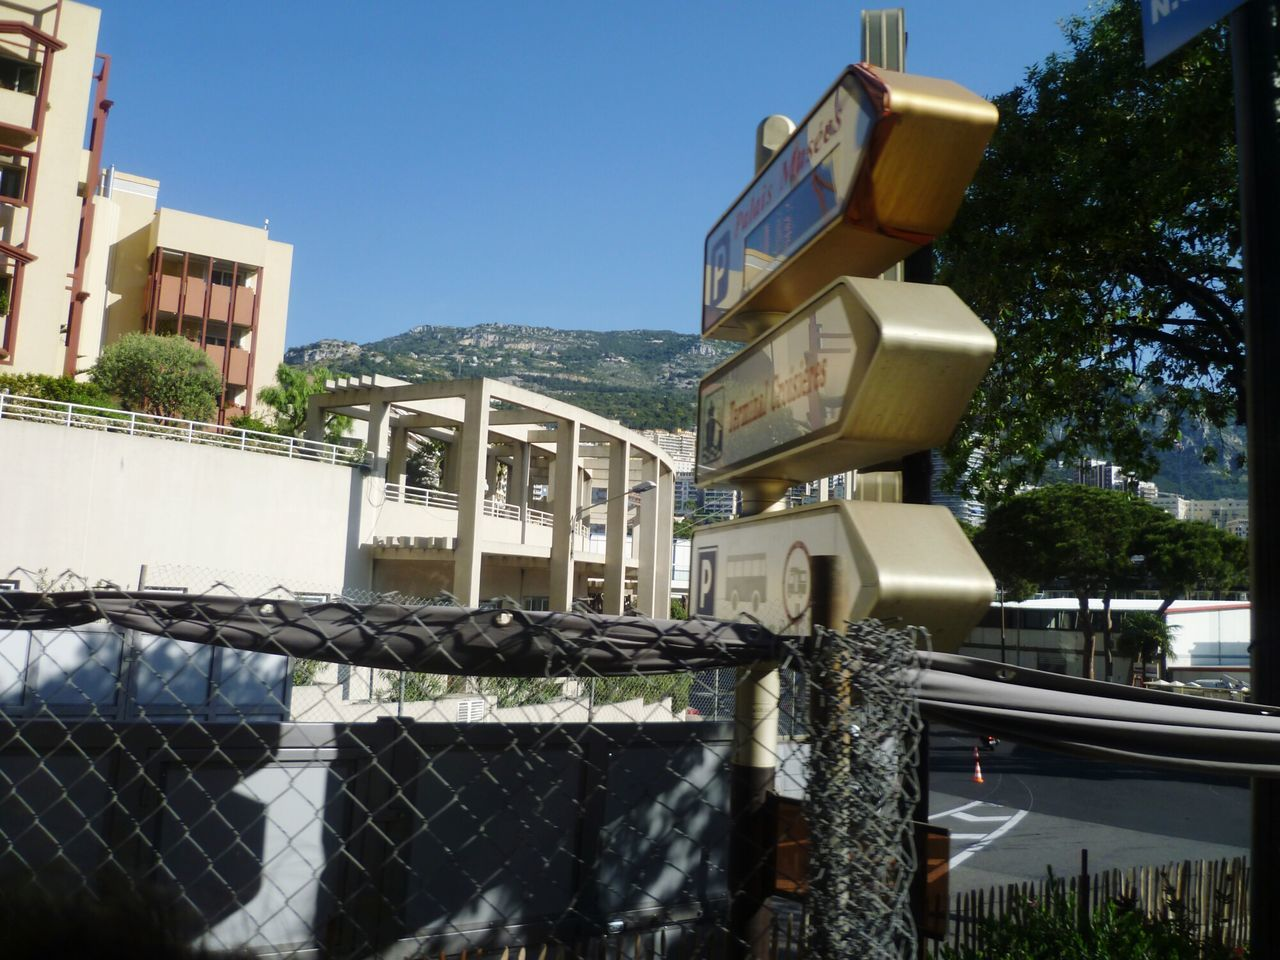 Monaco Monte Carlo Signs Building Summertime Architecture City No People Outdoors Day Tourist